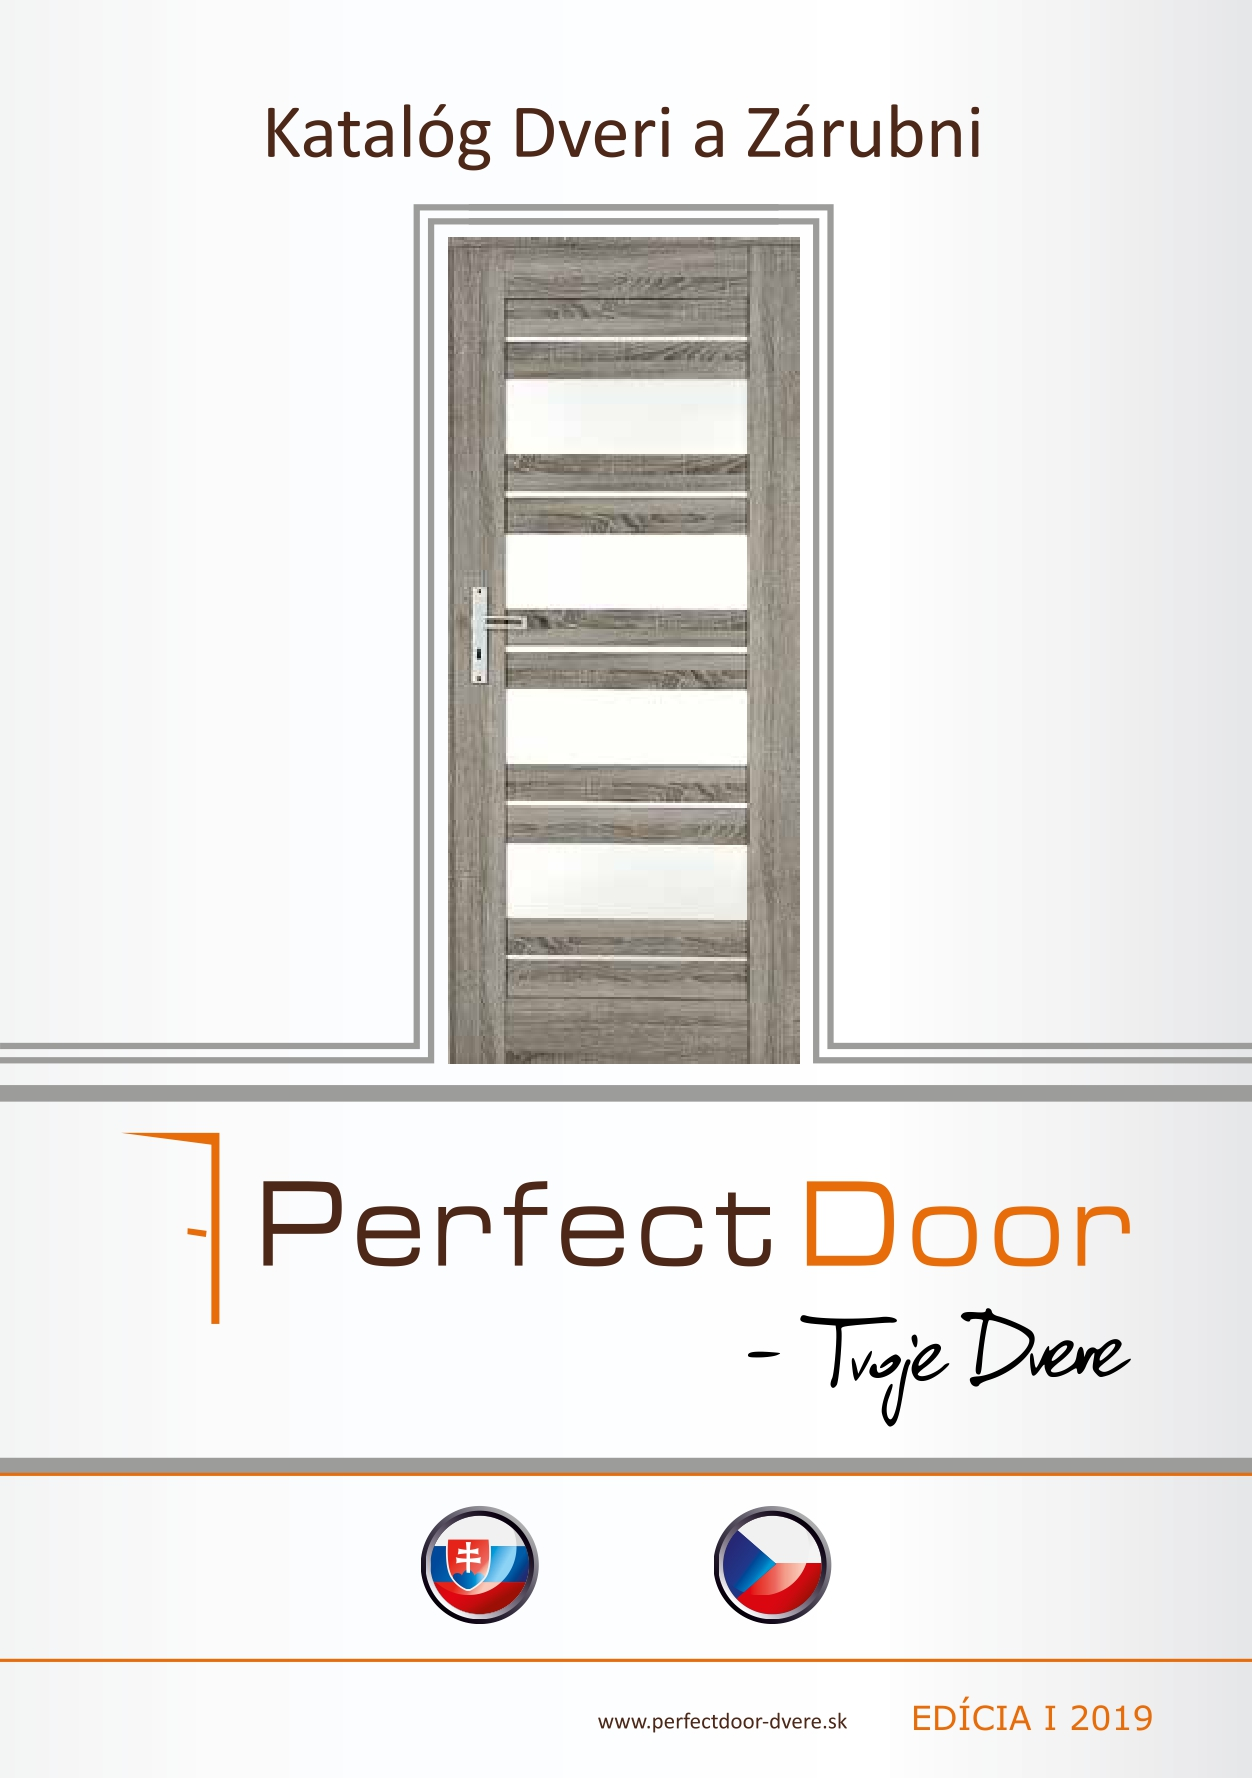 Perfectdoor katalog  1 2019 pages-to-jpg-0001